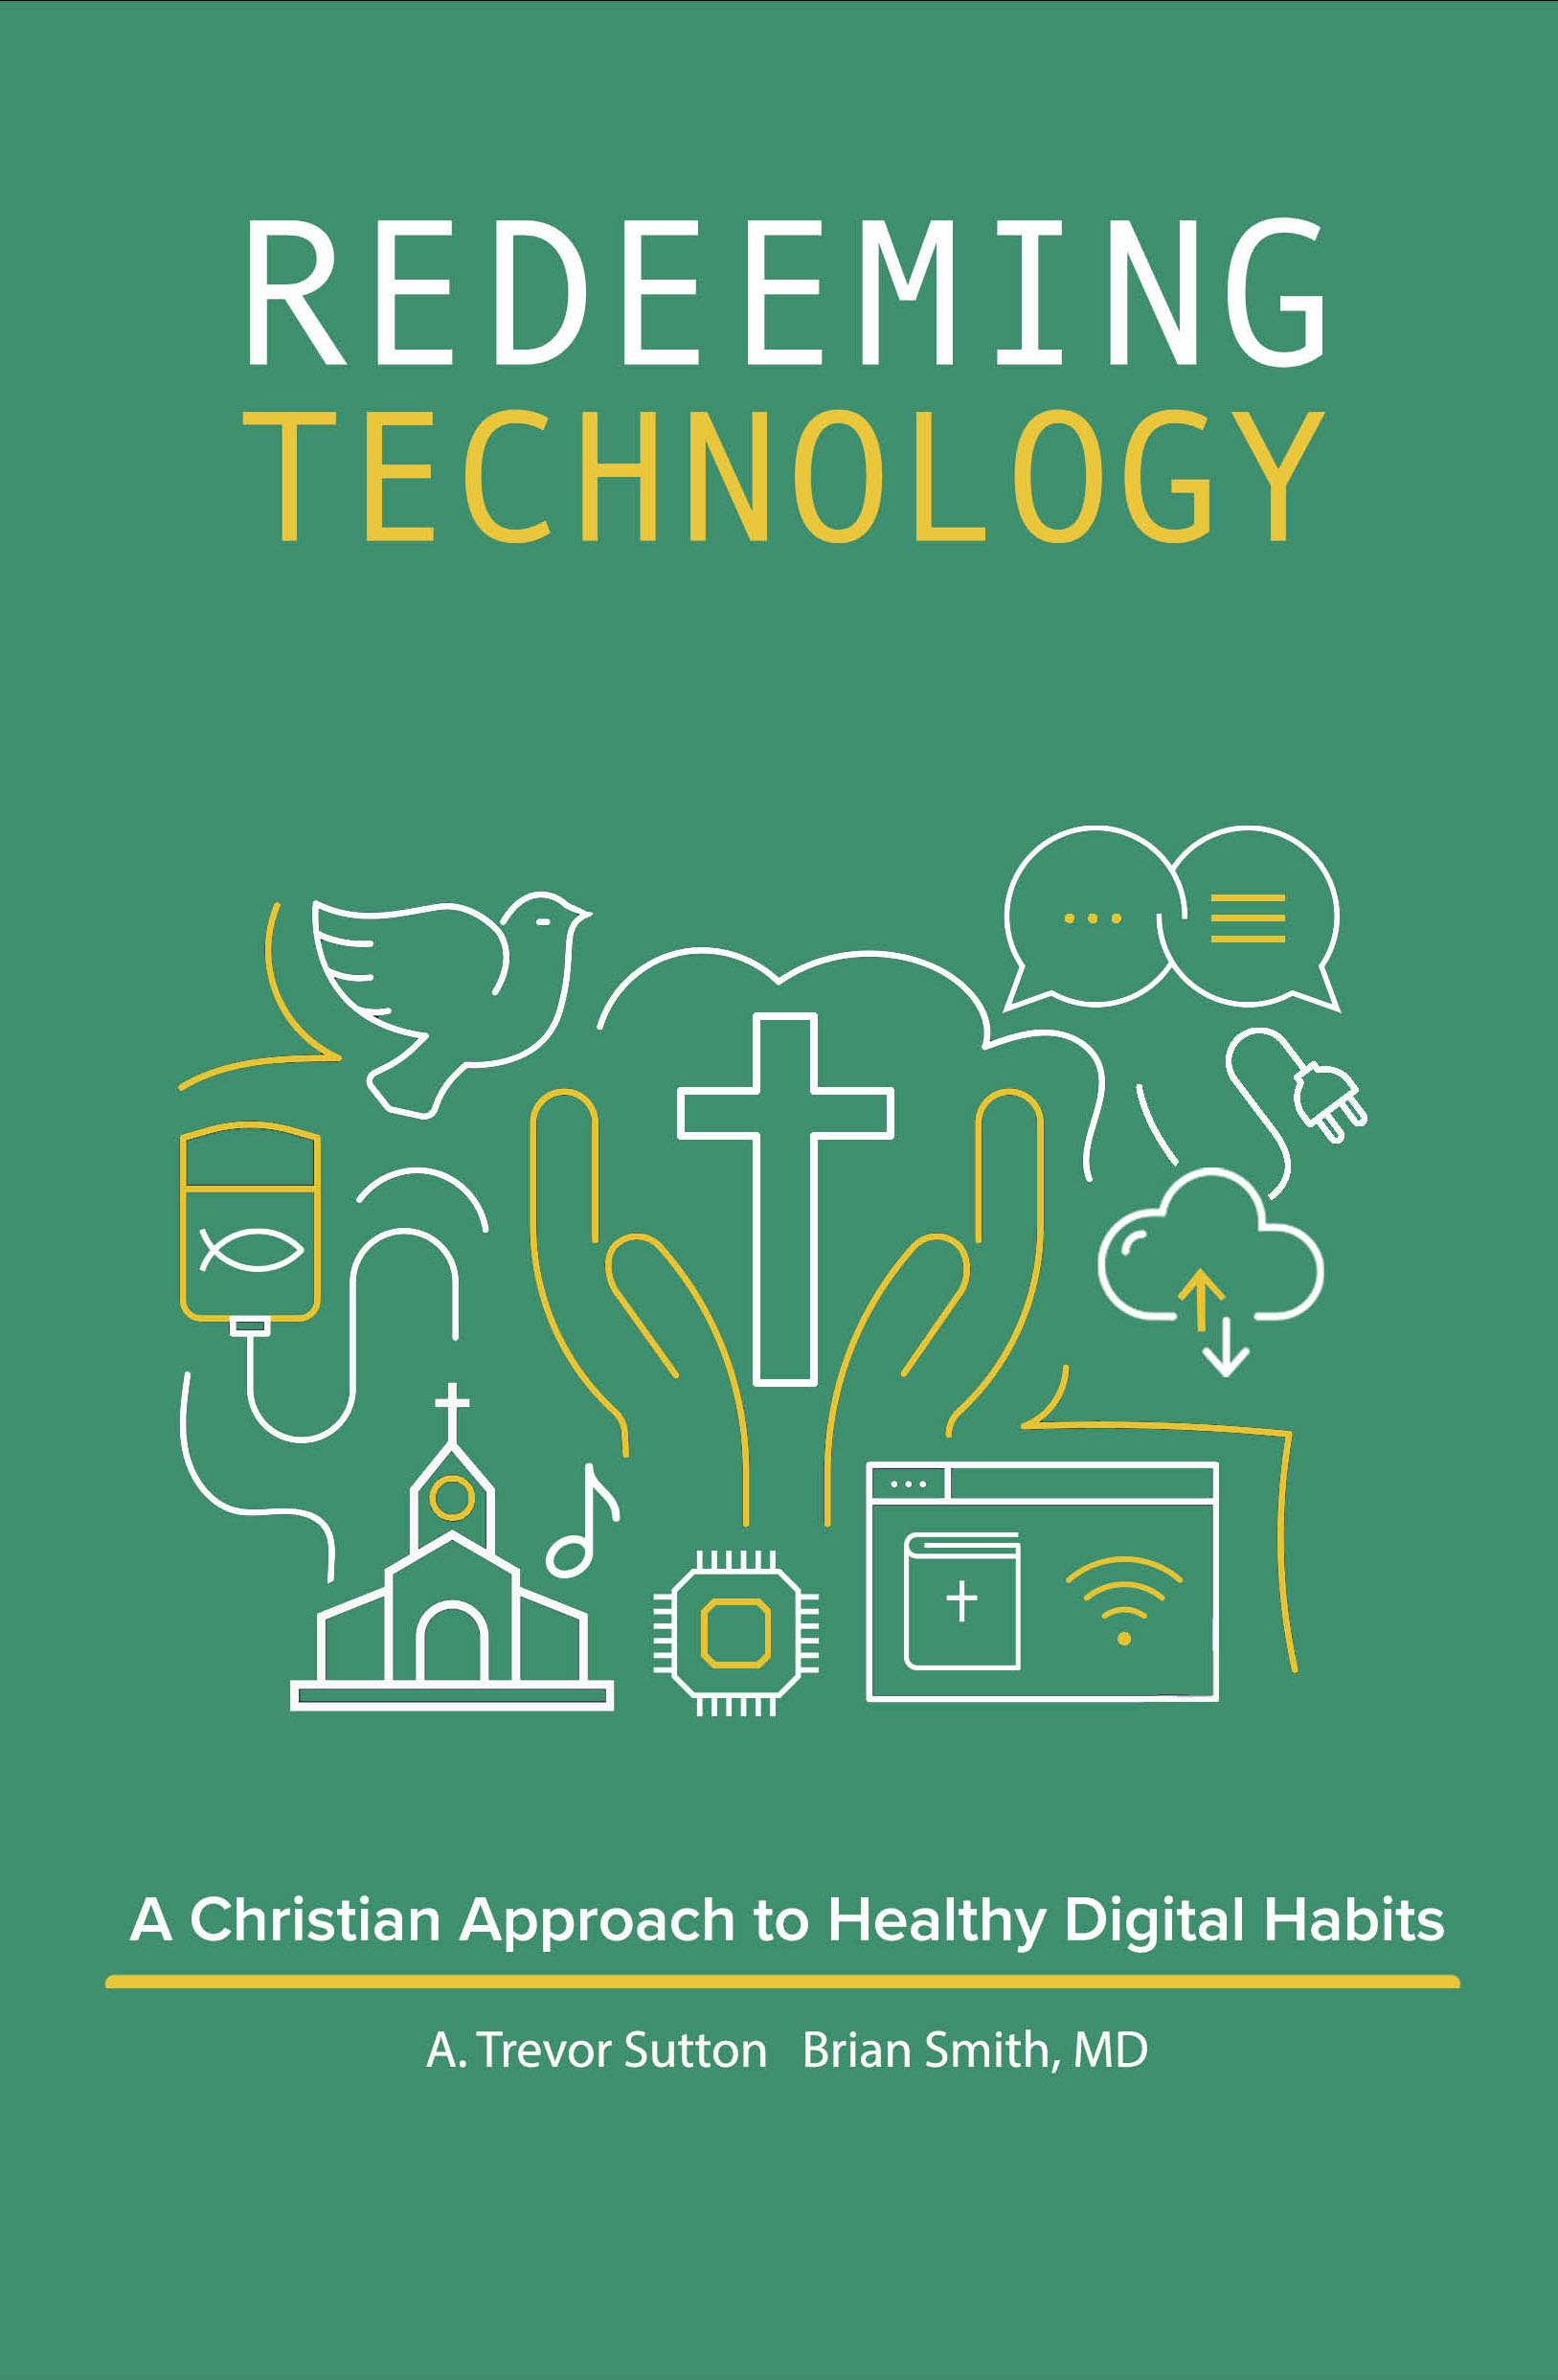 Redeeming Technology: A Christian Approach to Healthy Digital Habits